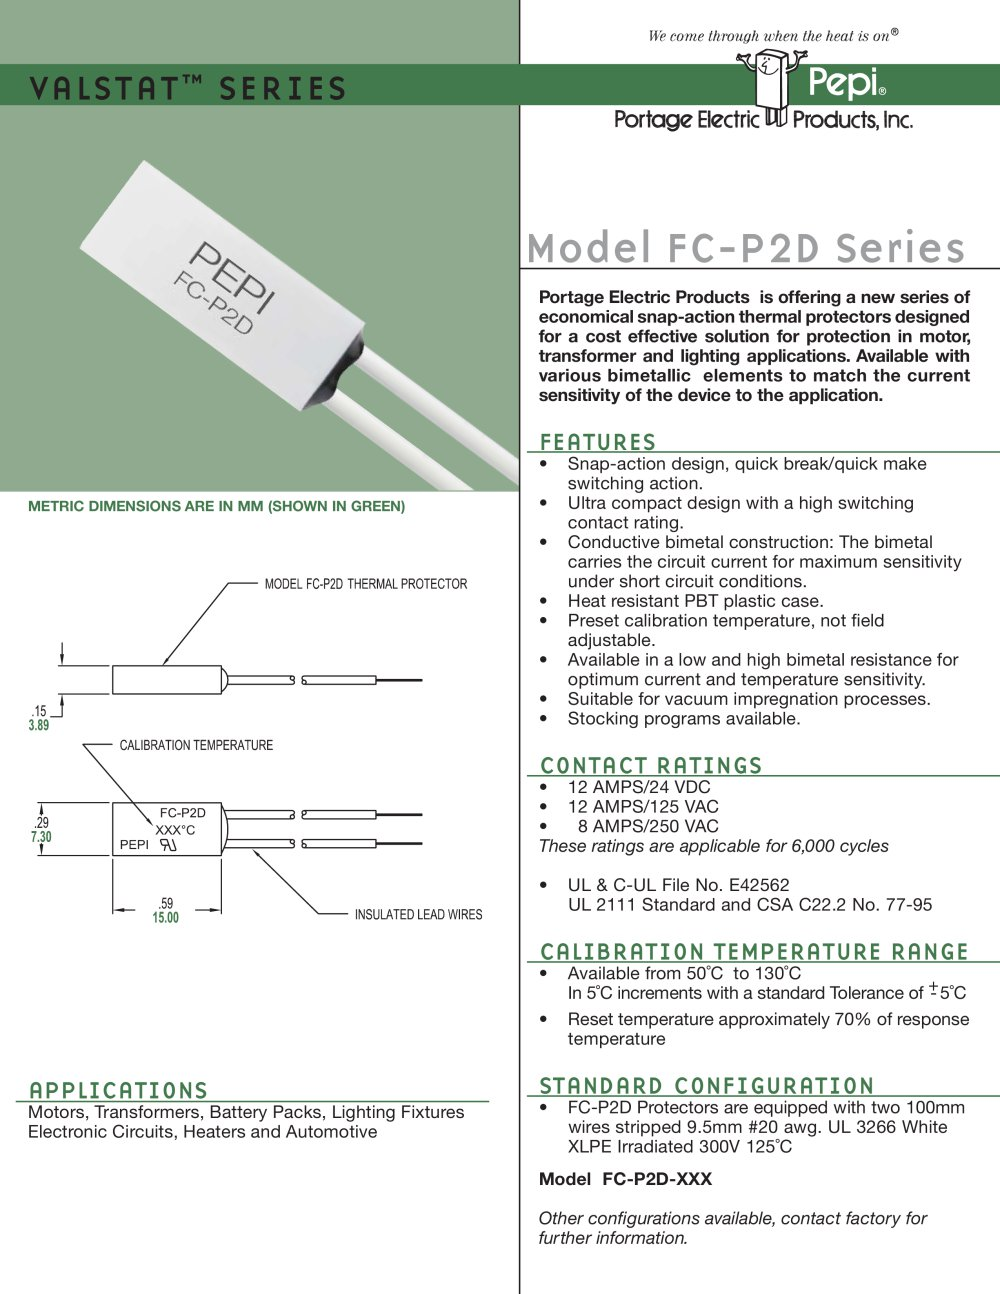 Model Fc P2d Series Portage Electric Products Inc Pepi Pdf Case Vac Wiring Diagram 1 2 Pages